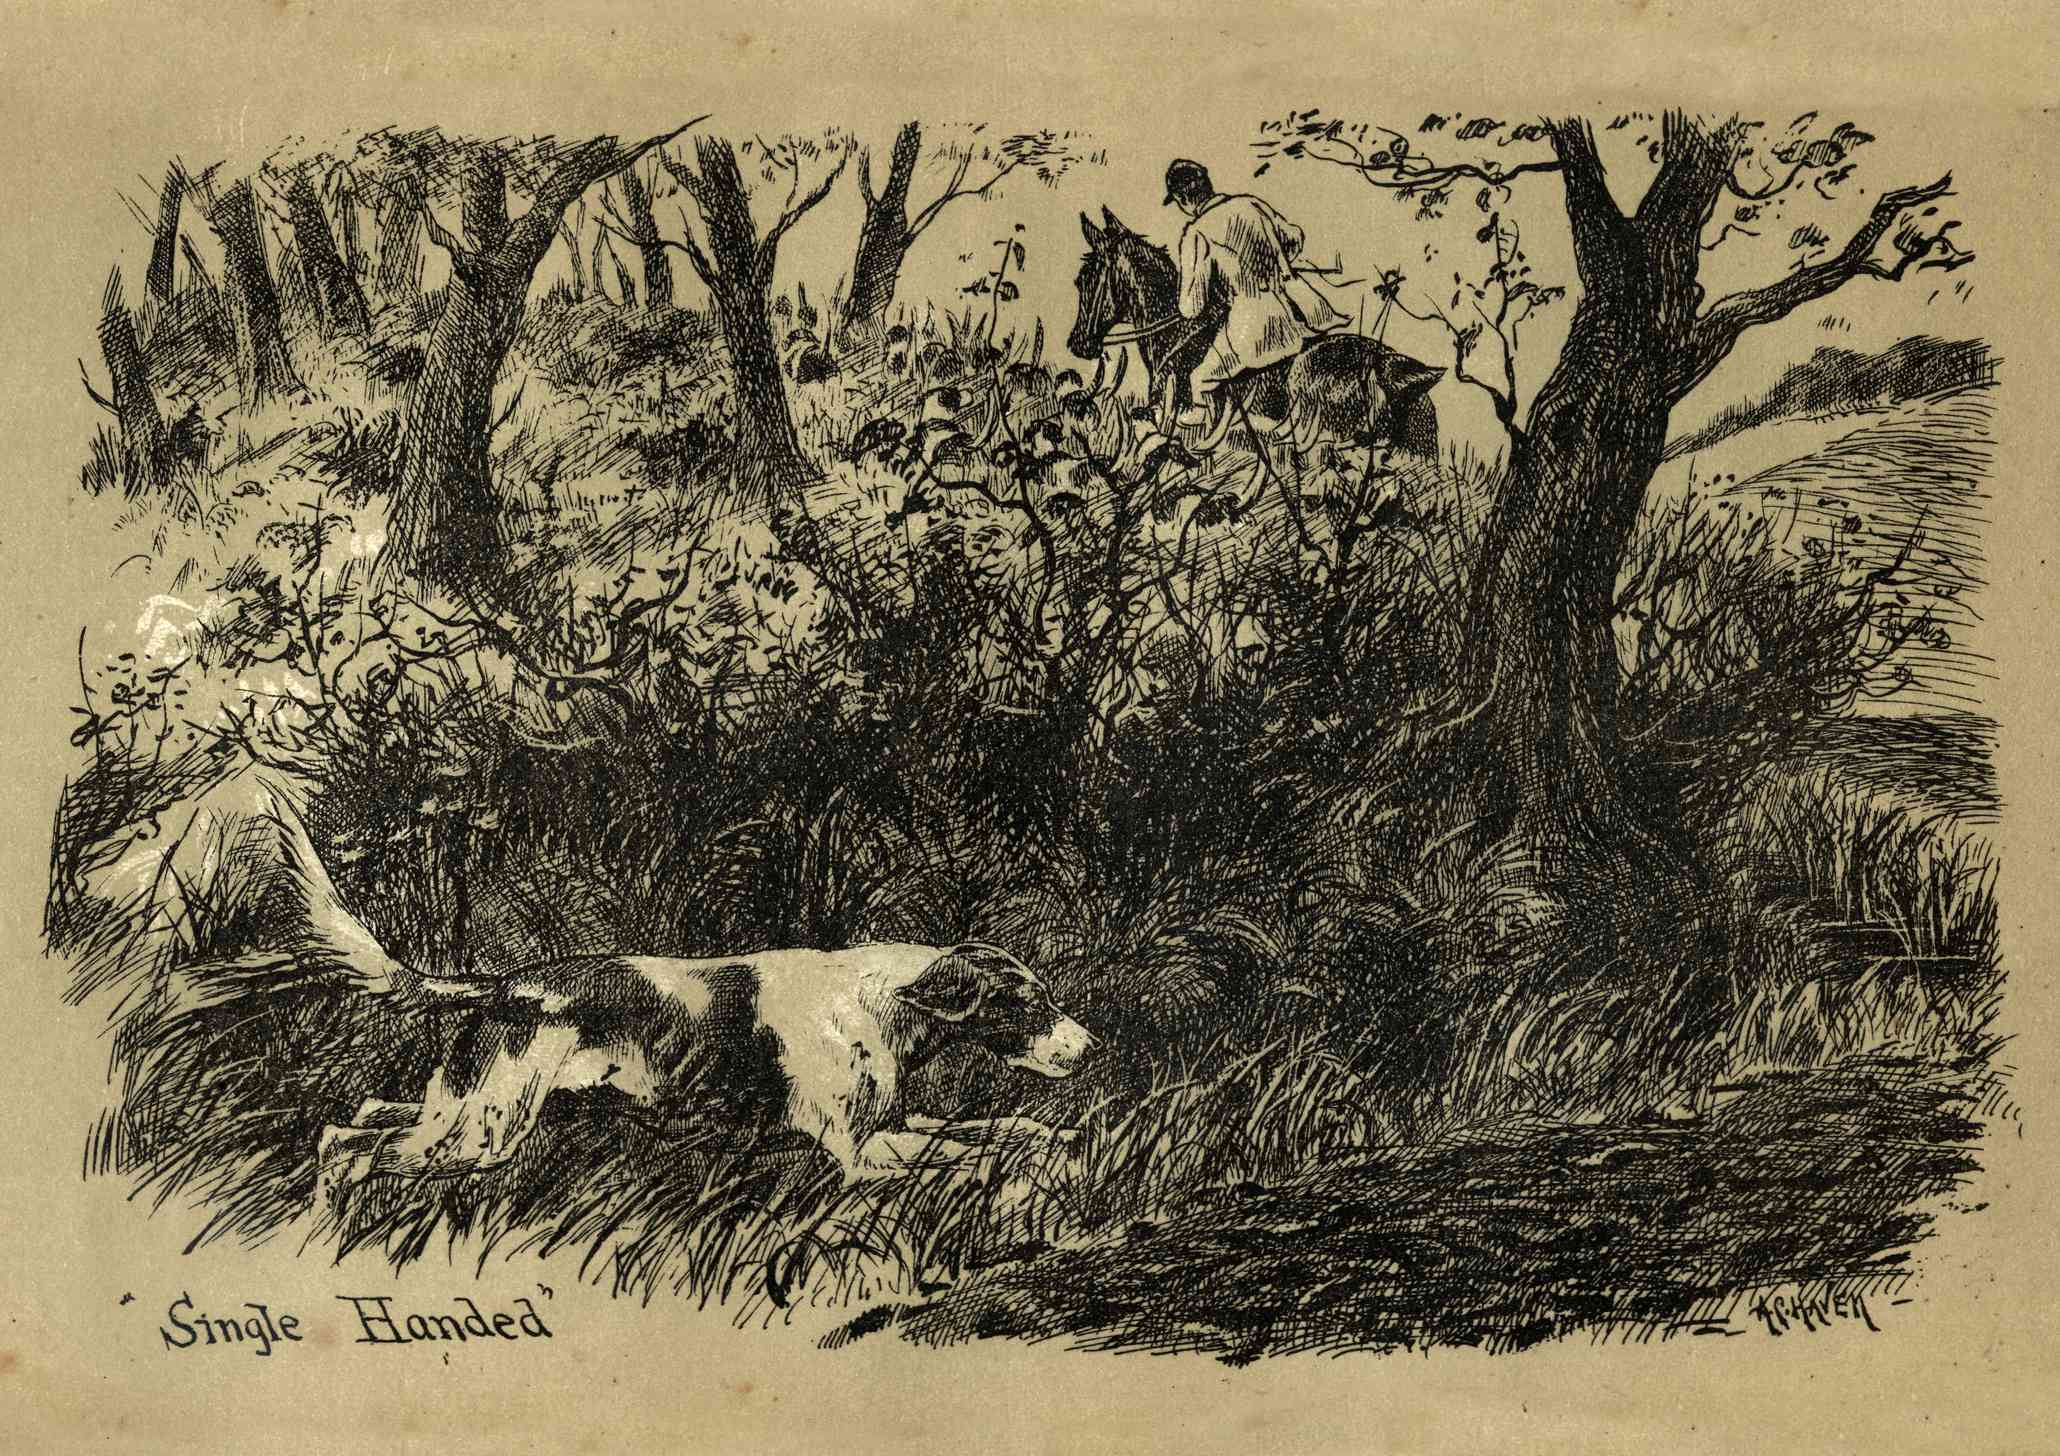 A historic image of a Foxhound hunting.